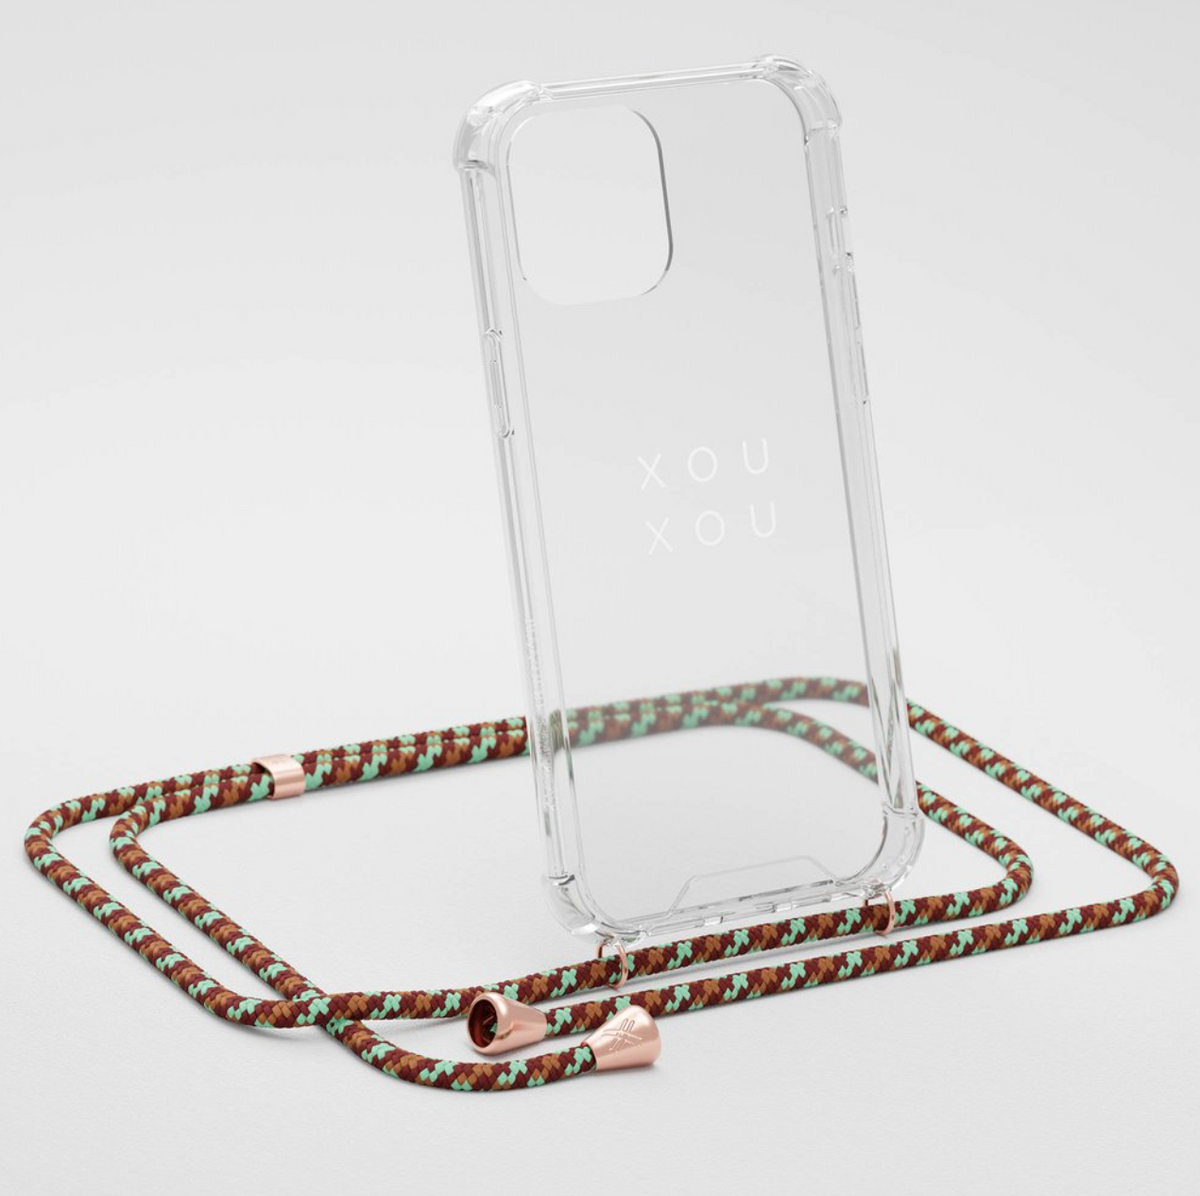 Phone Chain w. Clear Phone Case - Copper Camouflage